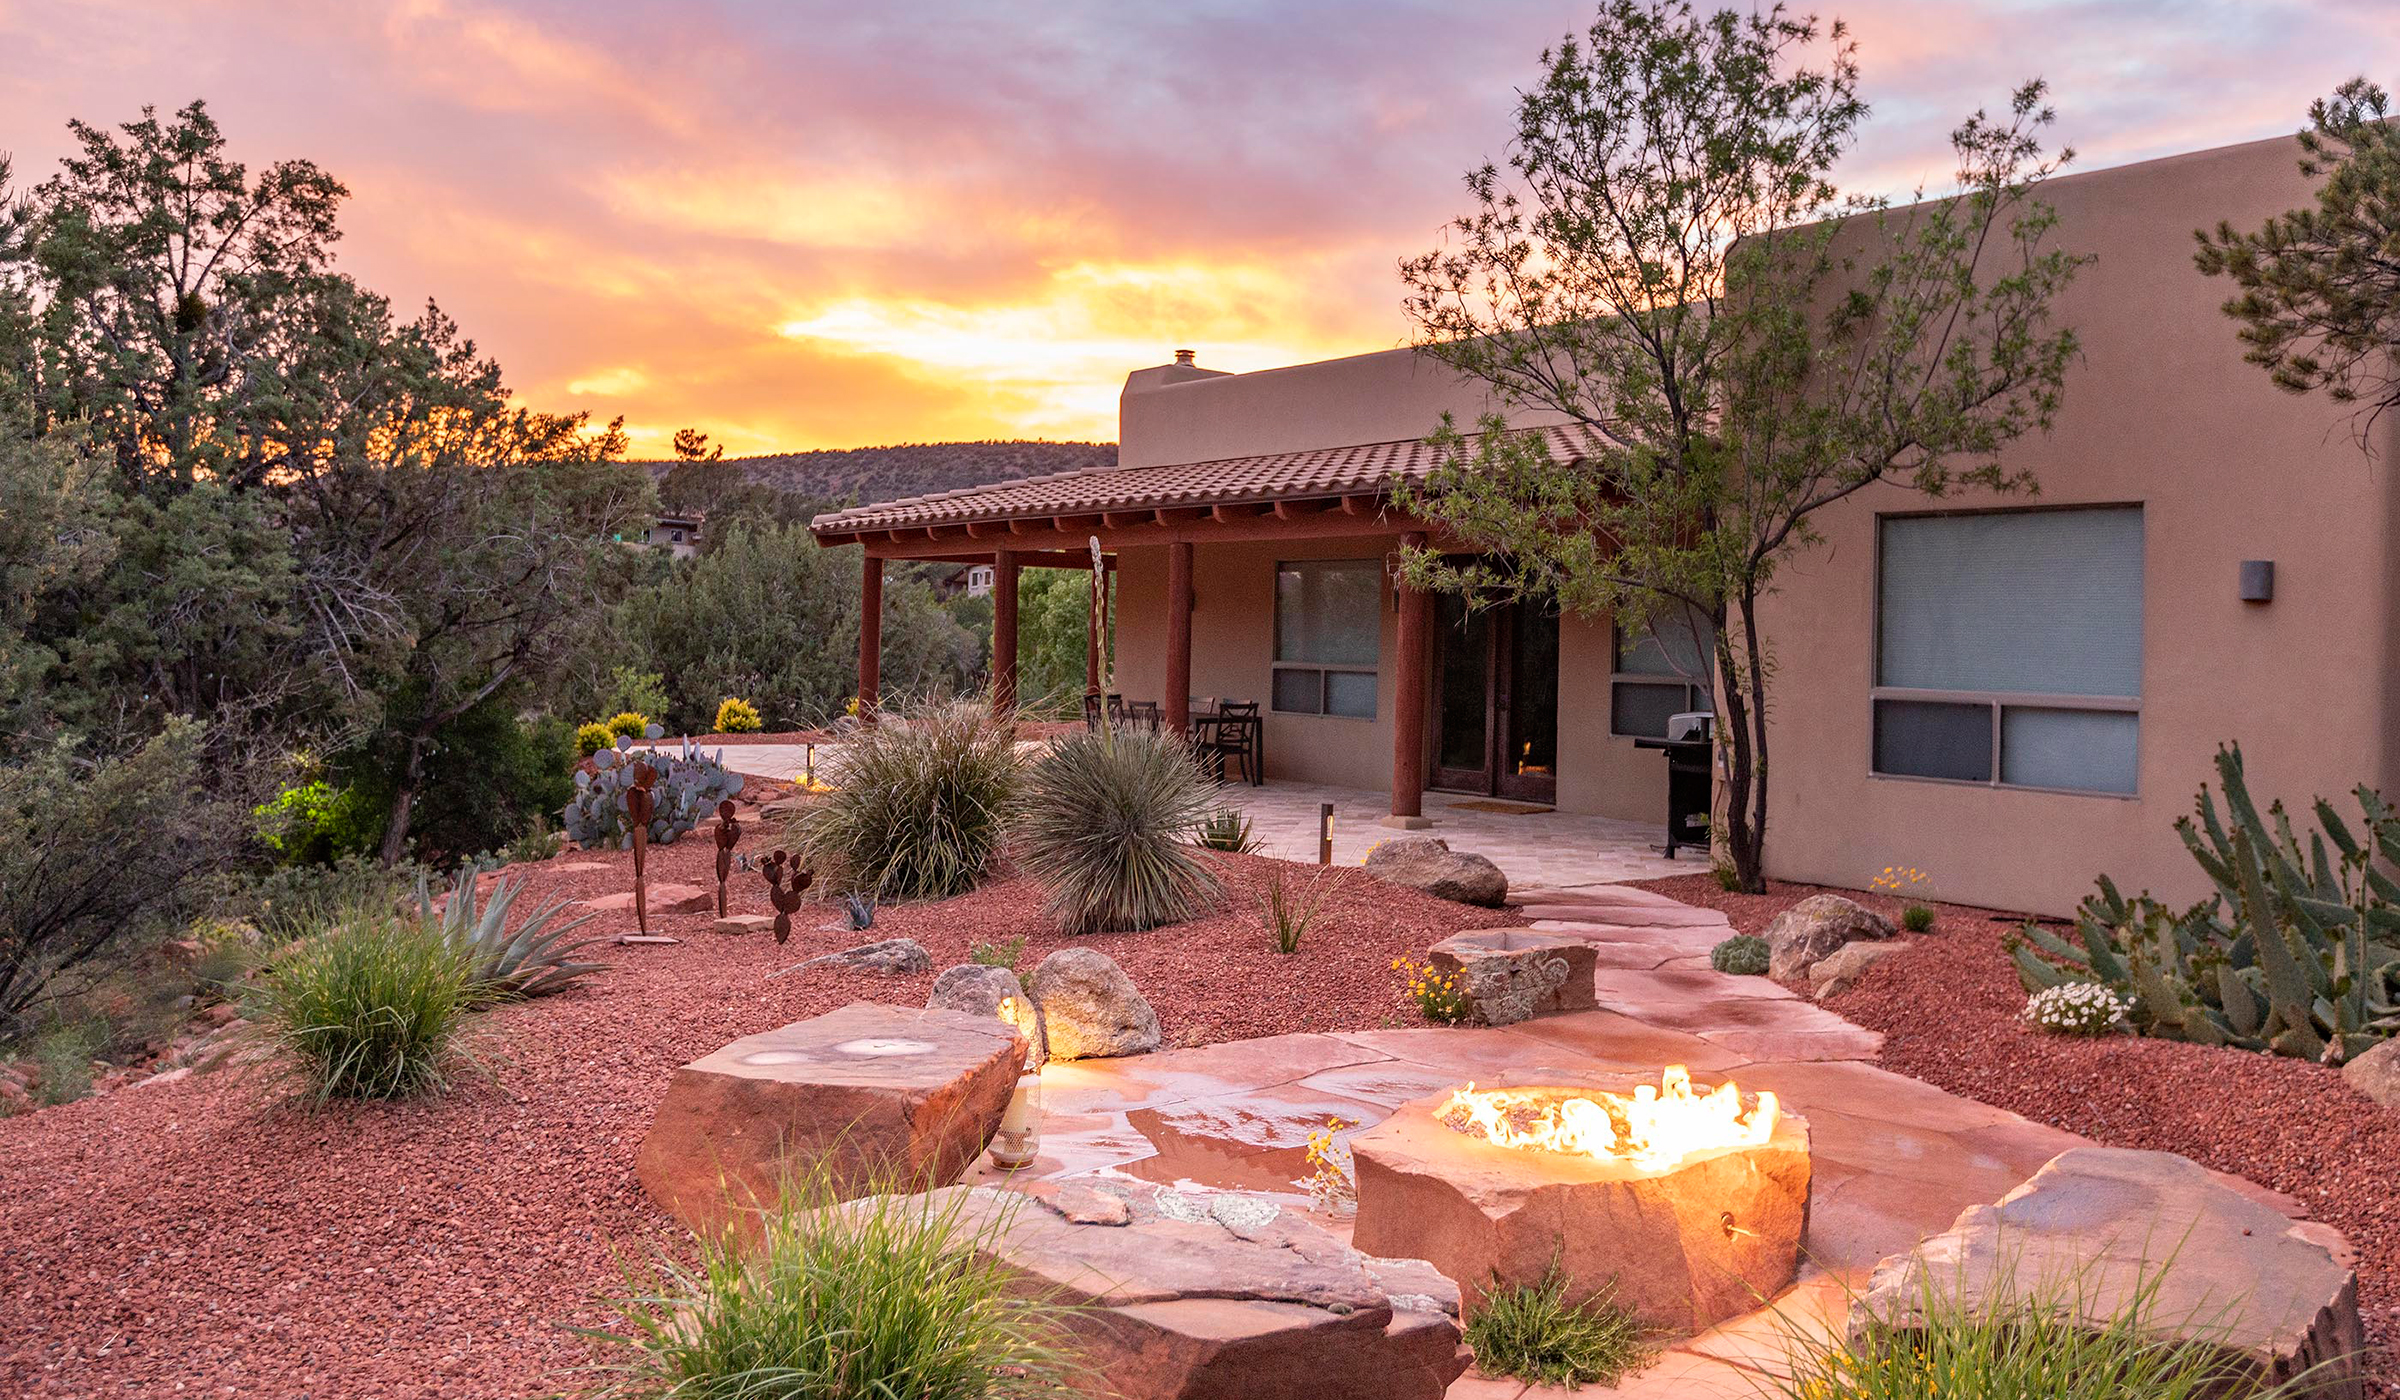 Landscape Design with Flagstone Patio and Fire-pIt Sedona Arizona